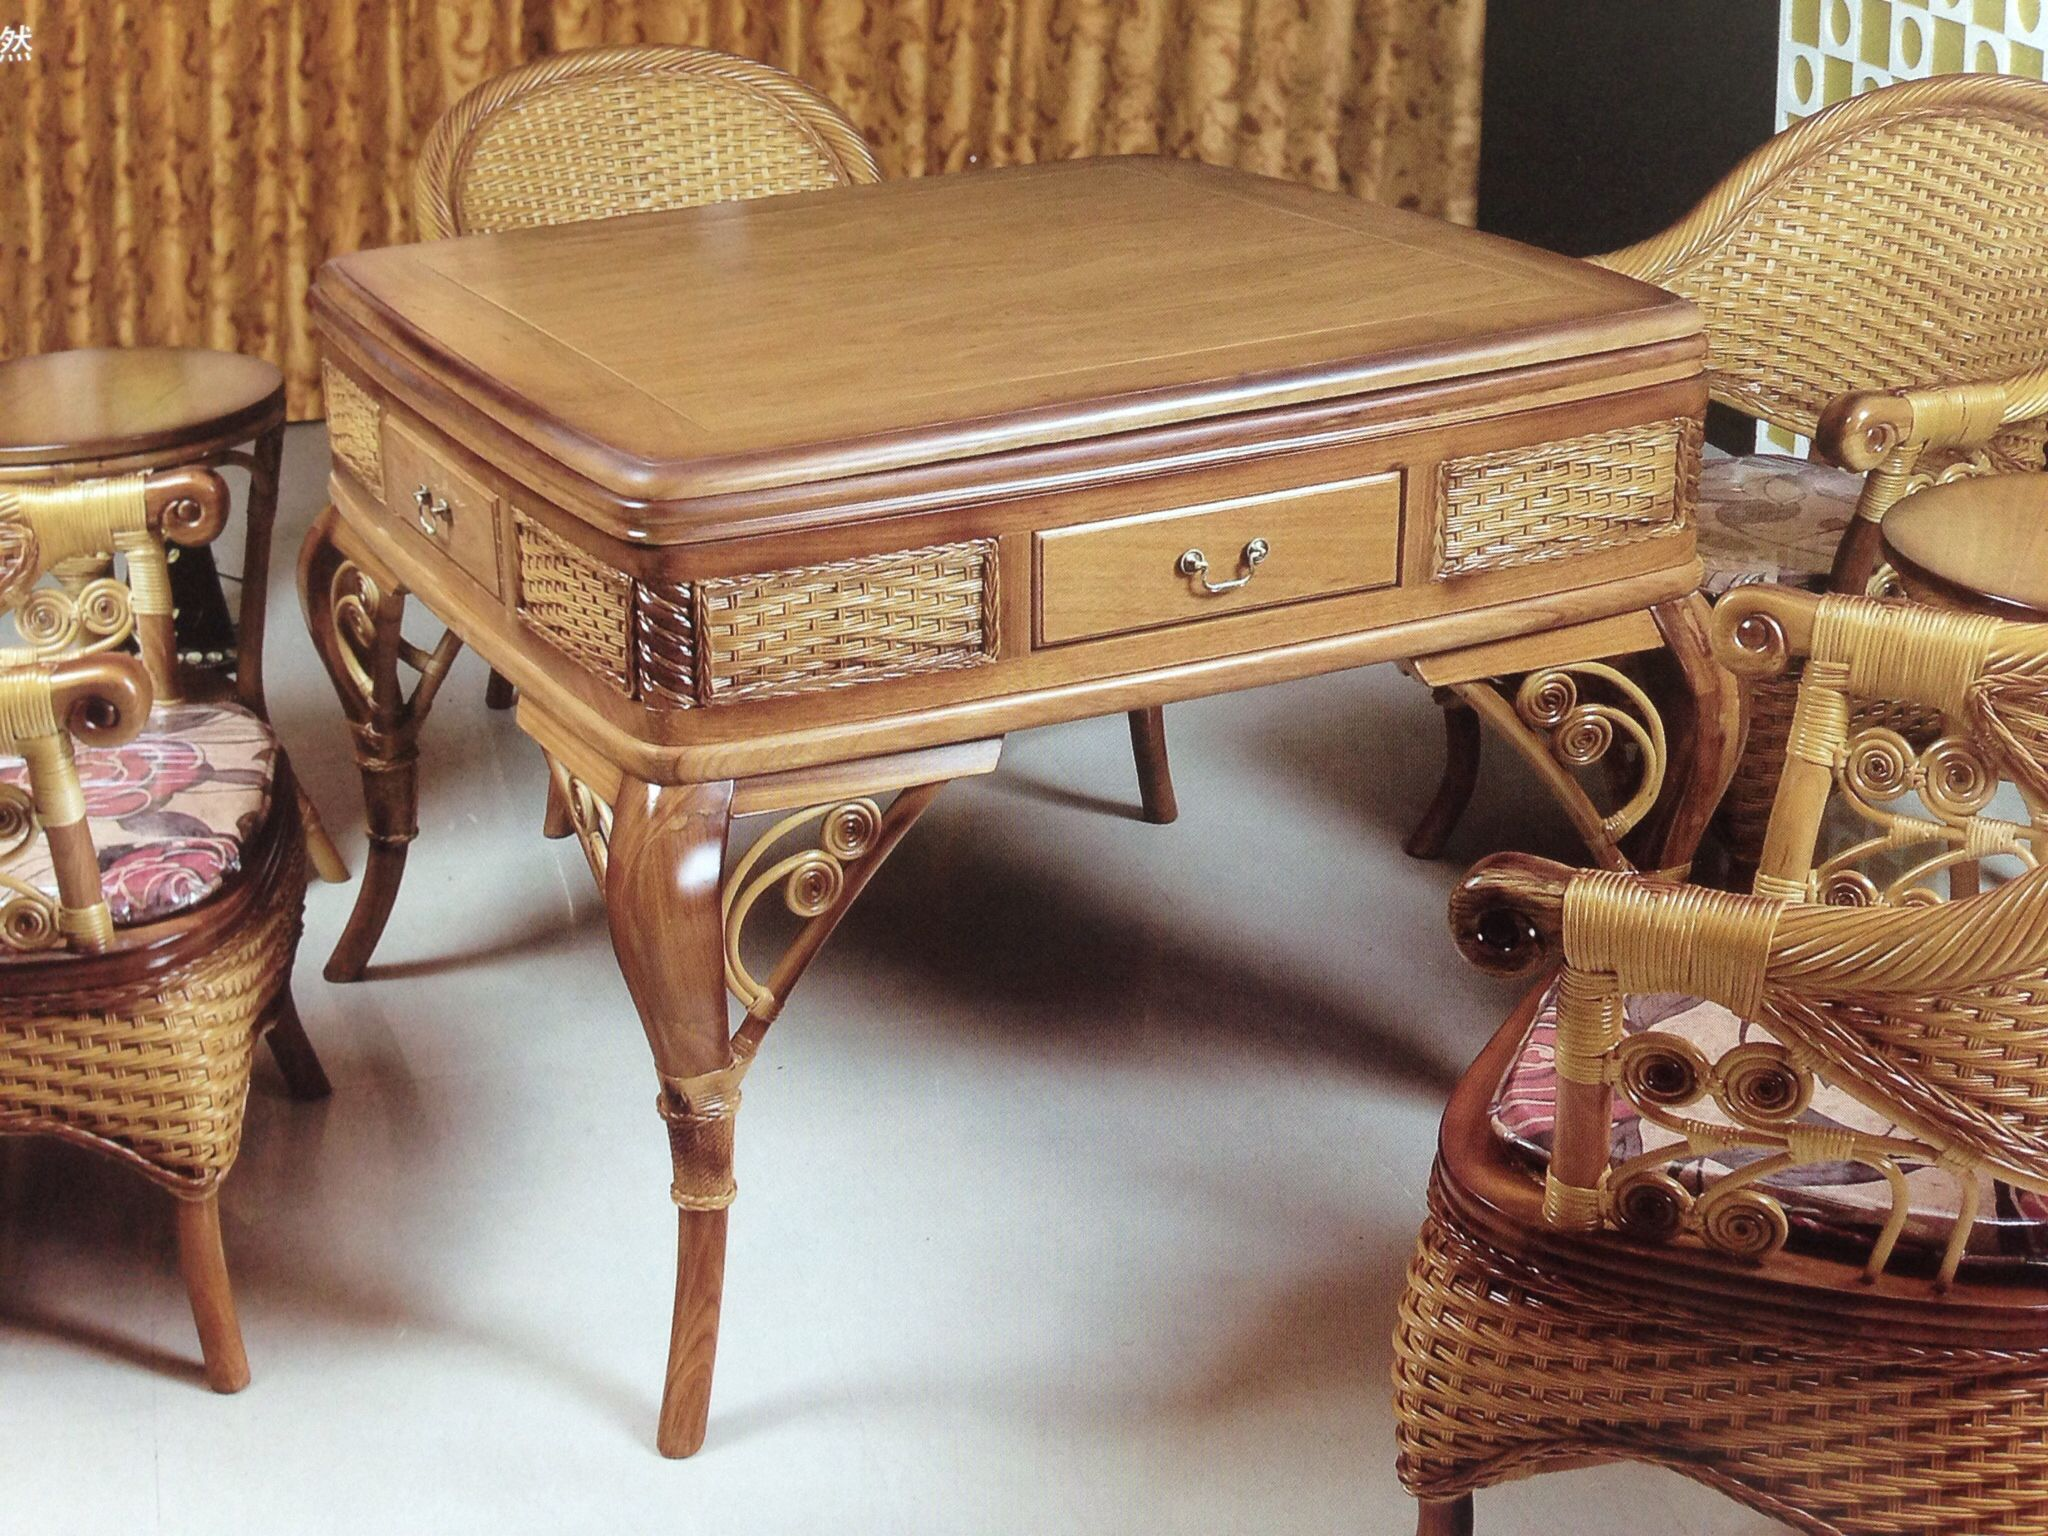 Fine Automatic Mahjong Table Made By Cane Wooden Home Remodel Download Free Architecture Designs Sospemadebymaigaardcom